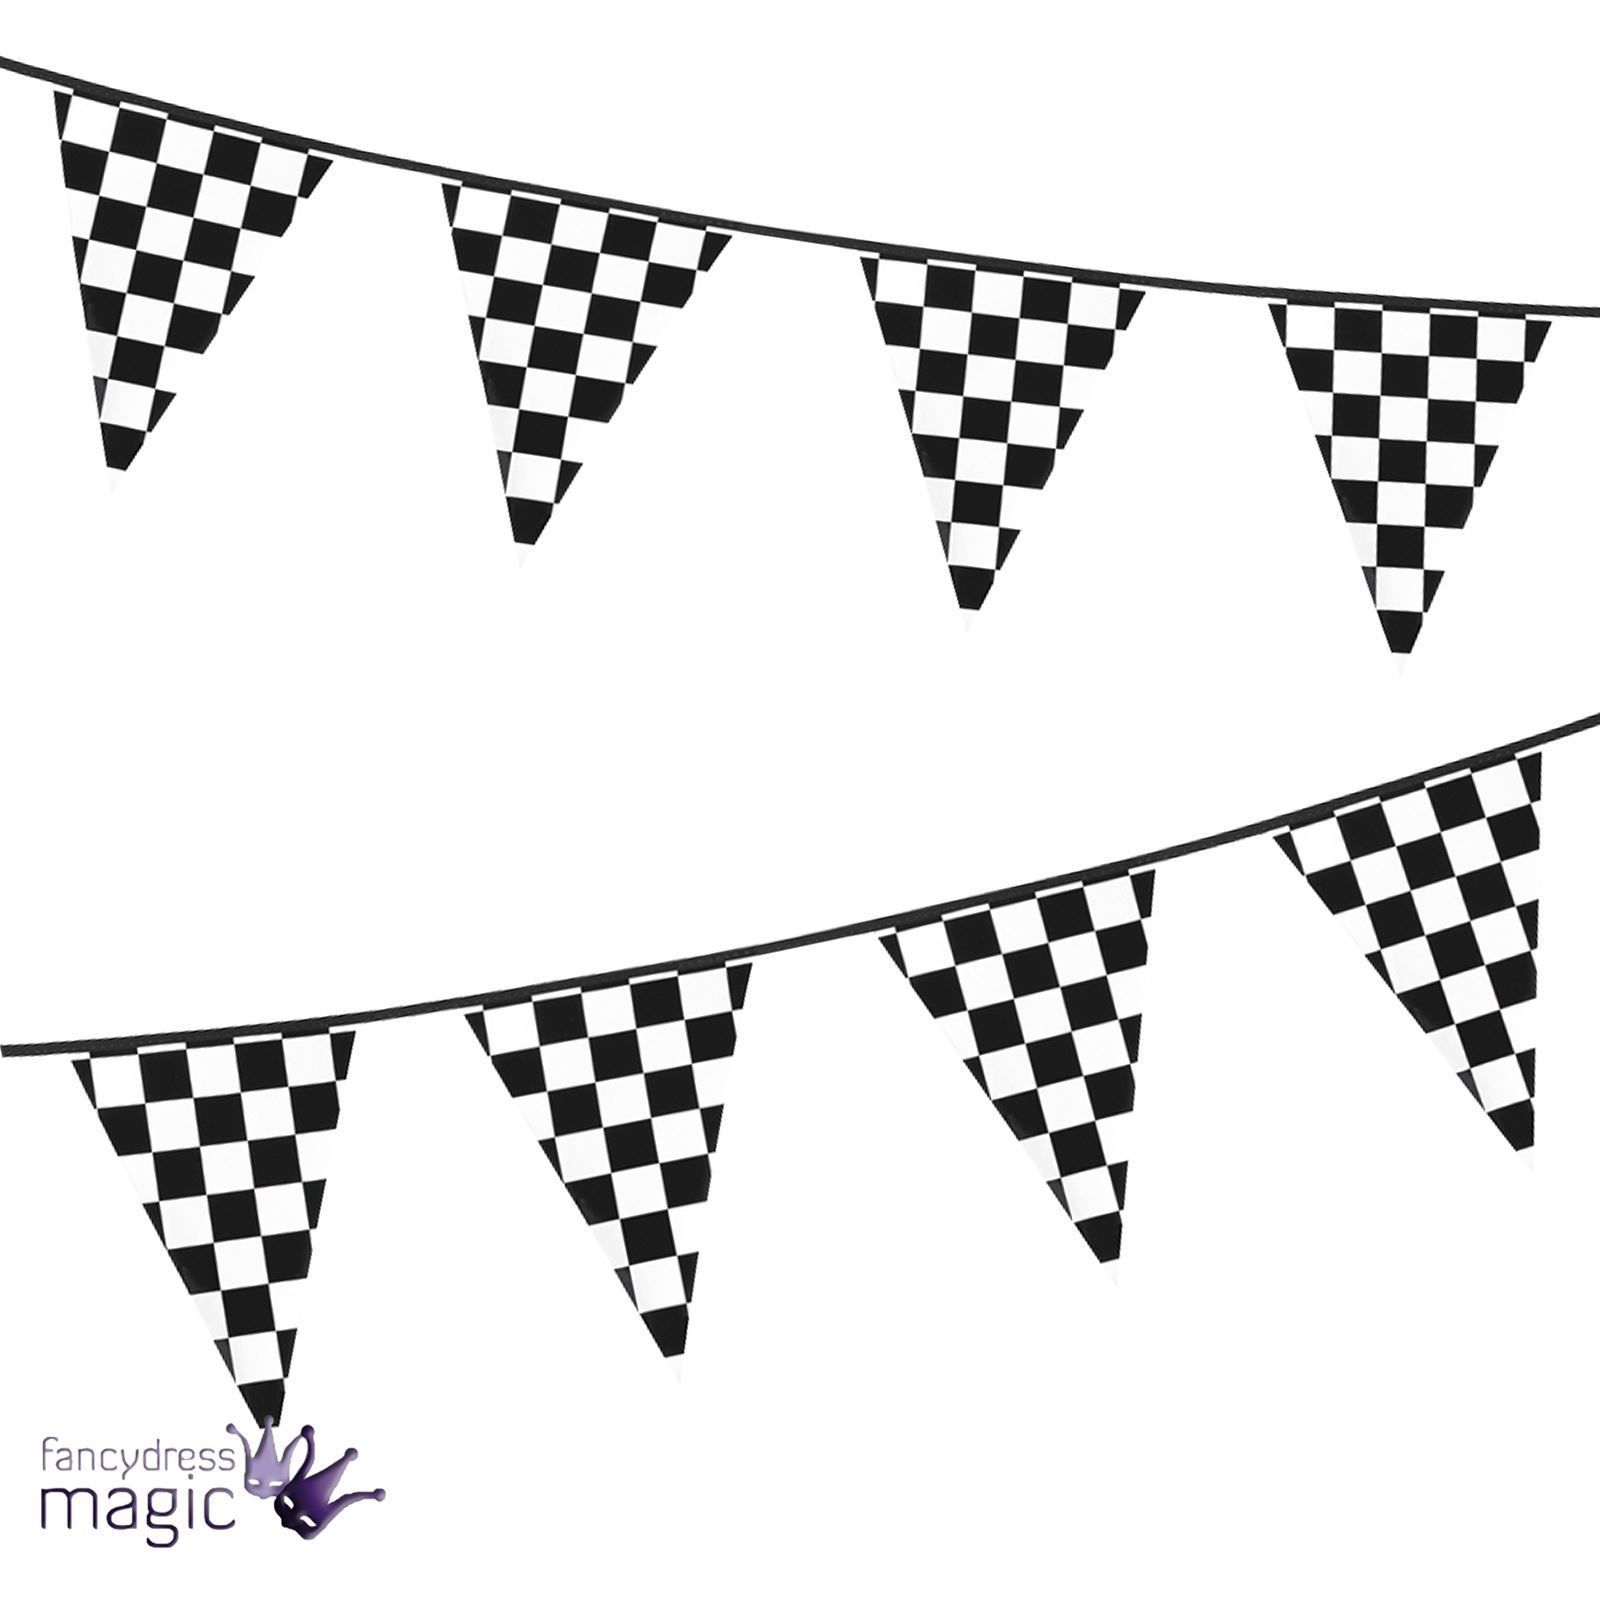 6M Chequered Flag Pennant Bunting F1 Motorsport Racing.